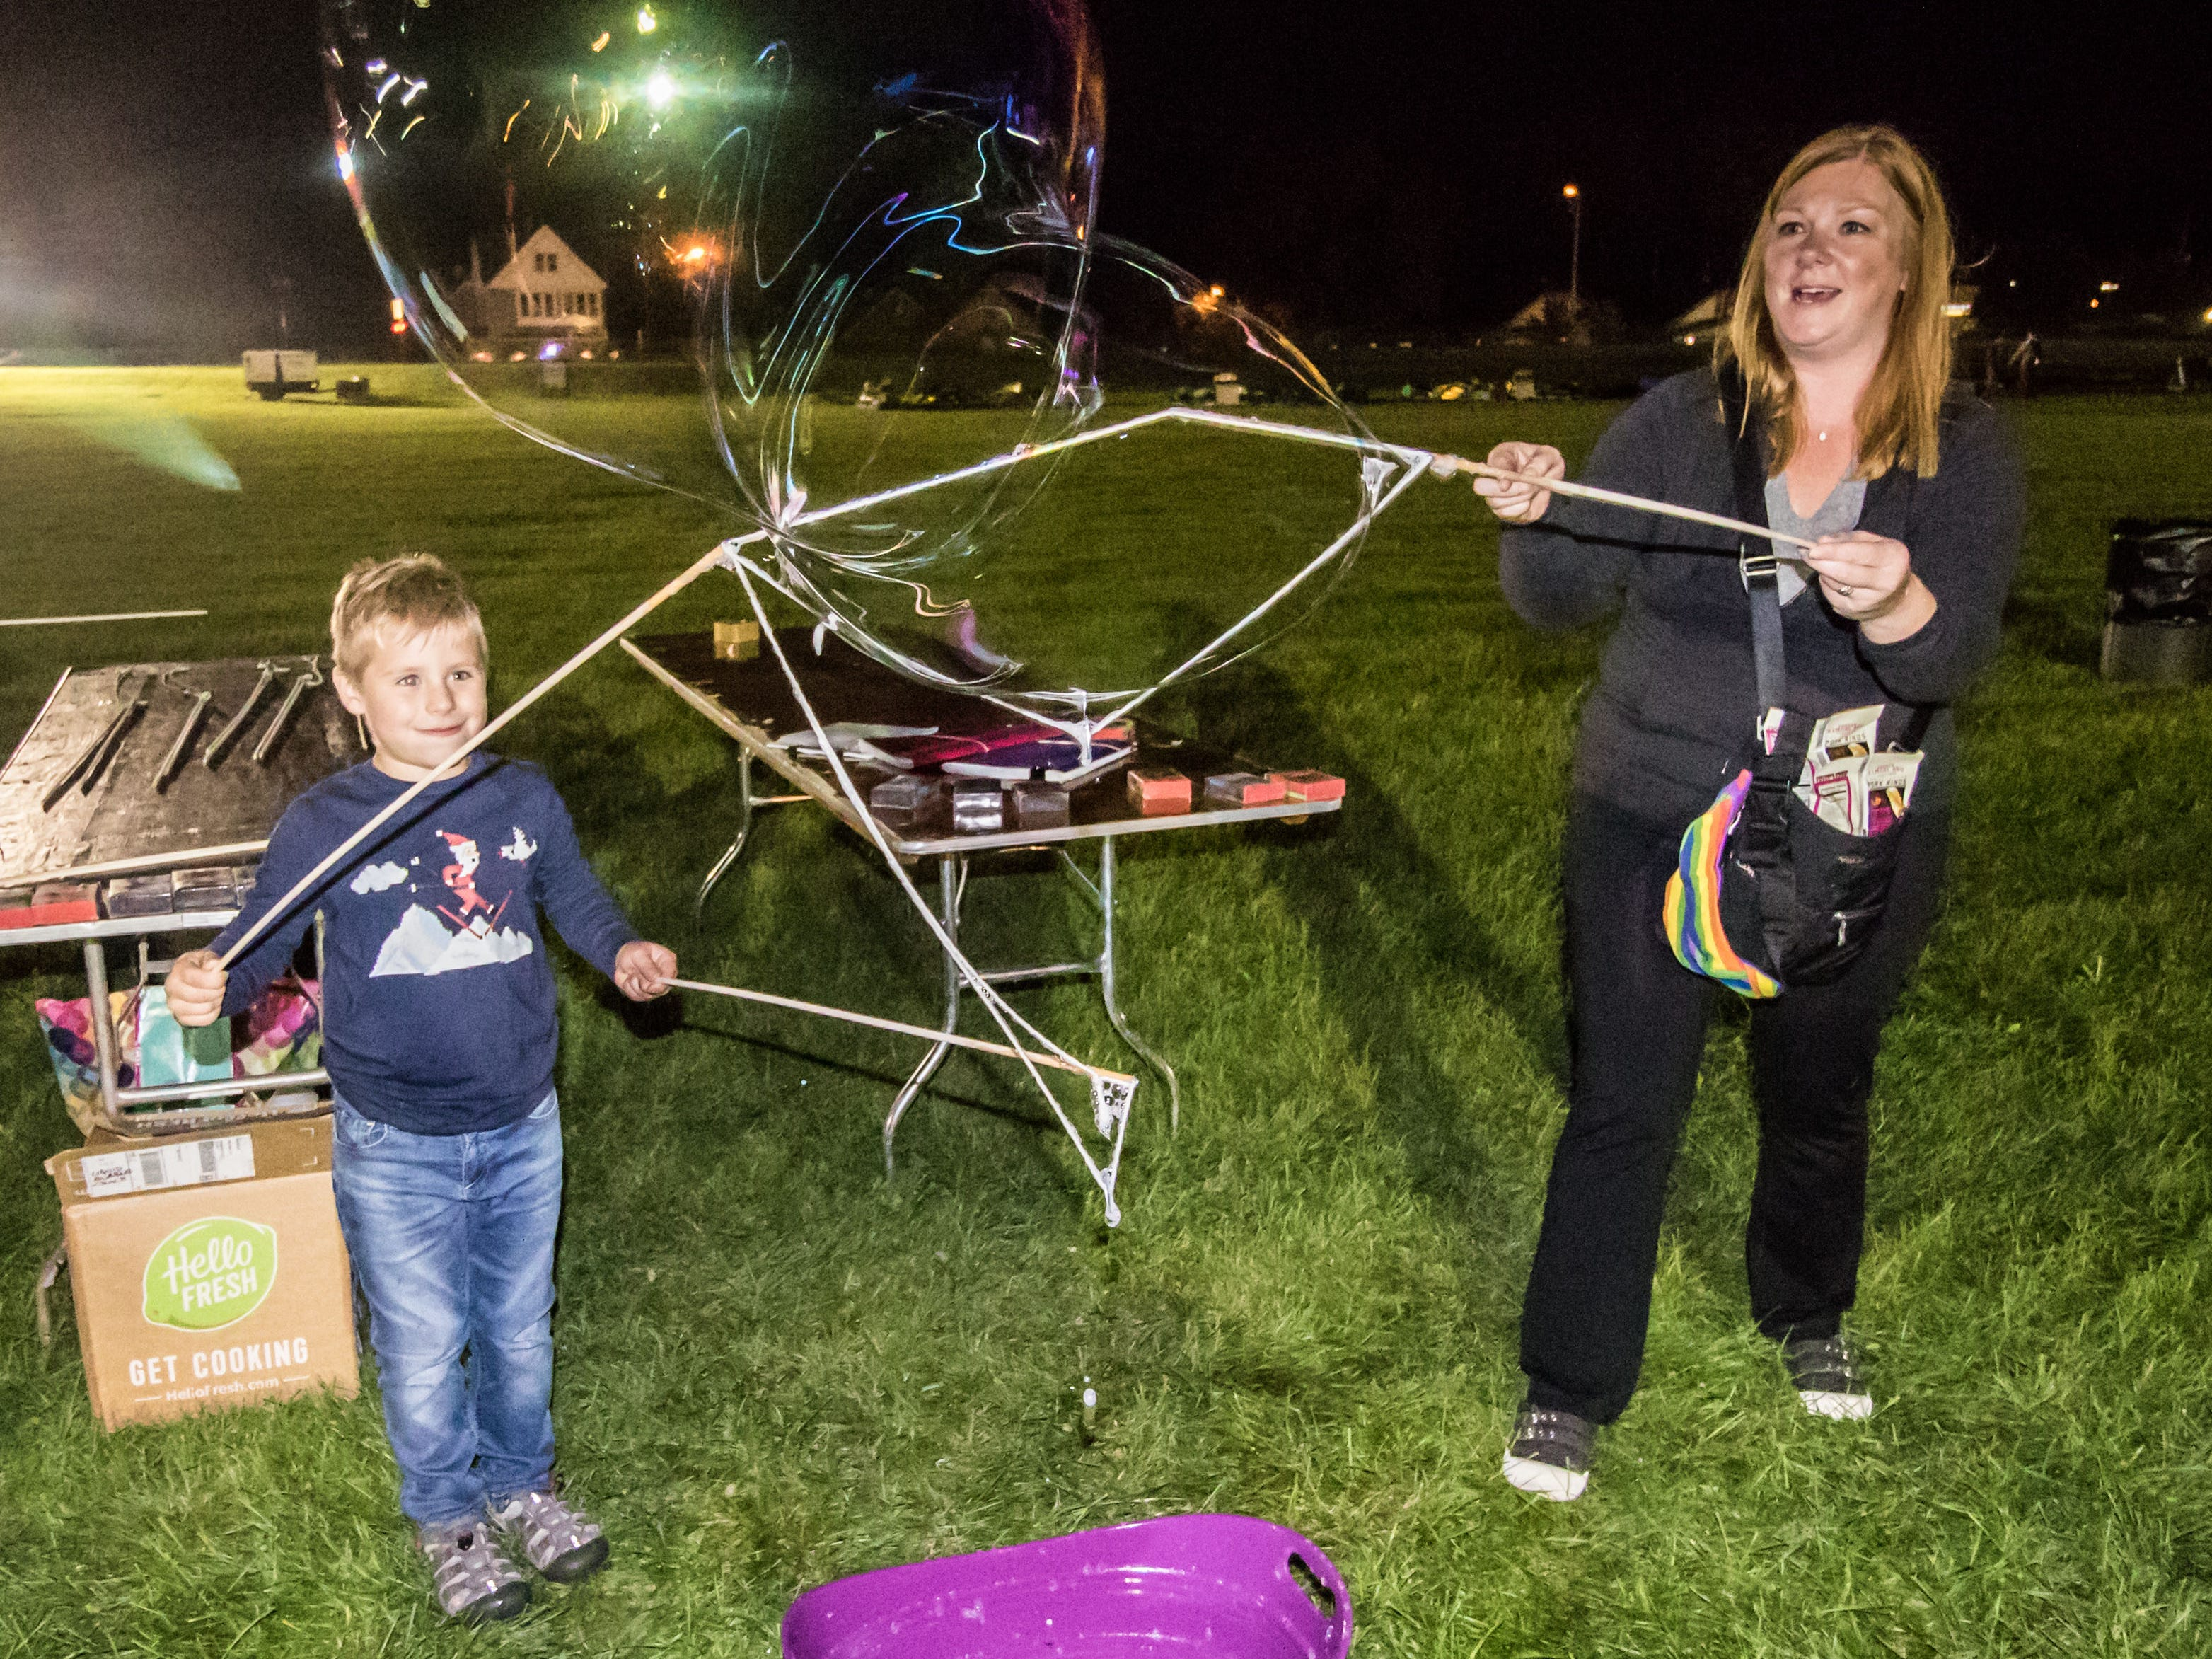 Logan Kittelson, 6, and Alison Due, both of Wauwatosa, create gigantic bubbles during TosaFest 2018 at Hart Park on Friday, Sept. 7. The free two-day event features live music, food, kids activities and more.